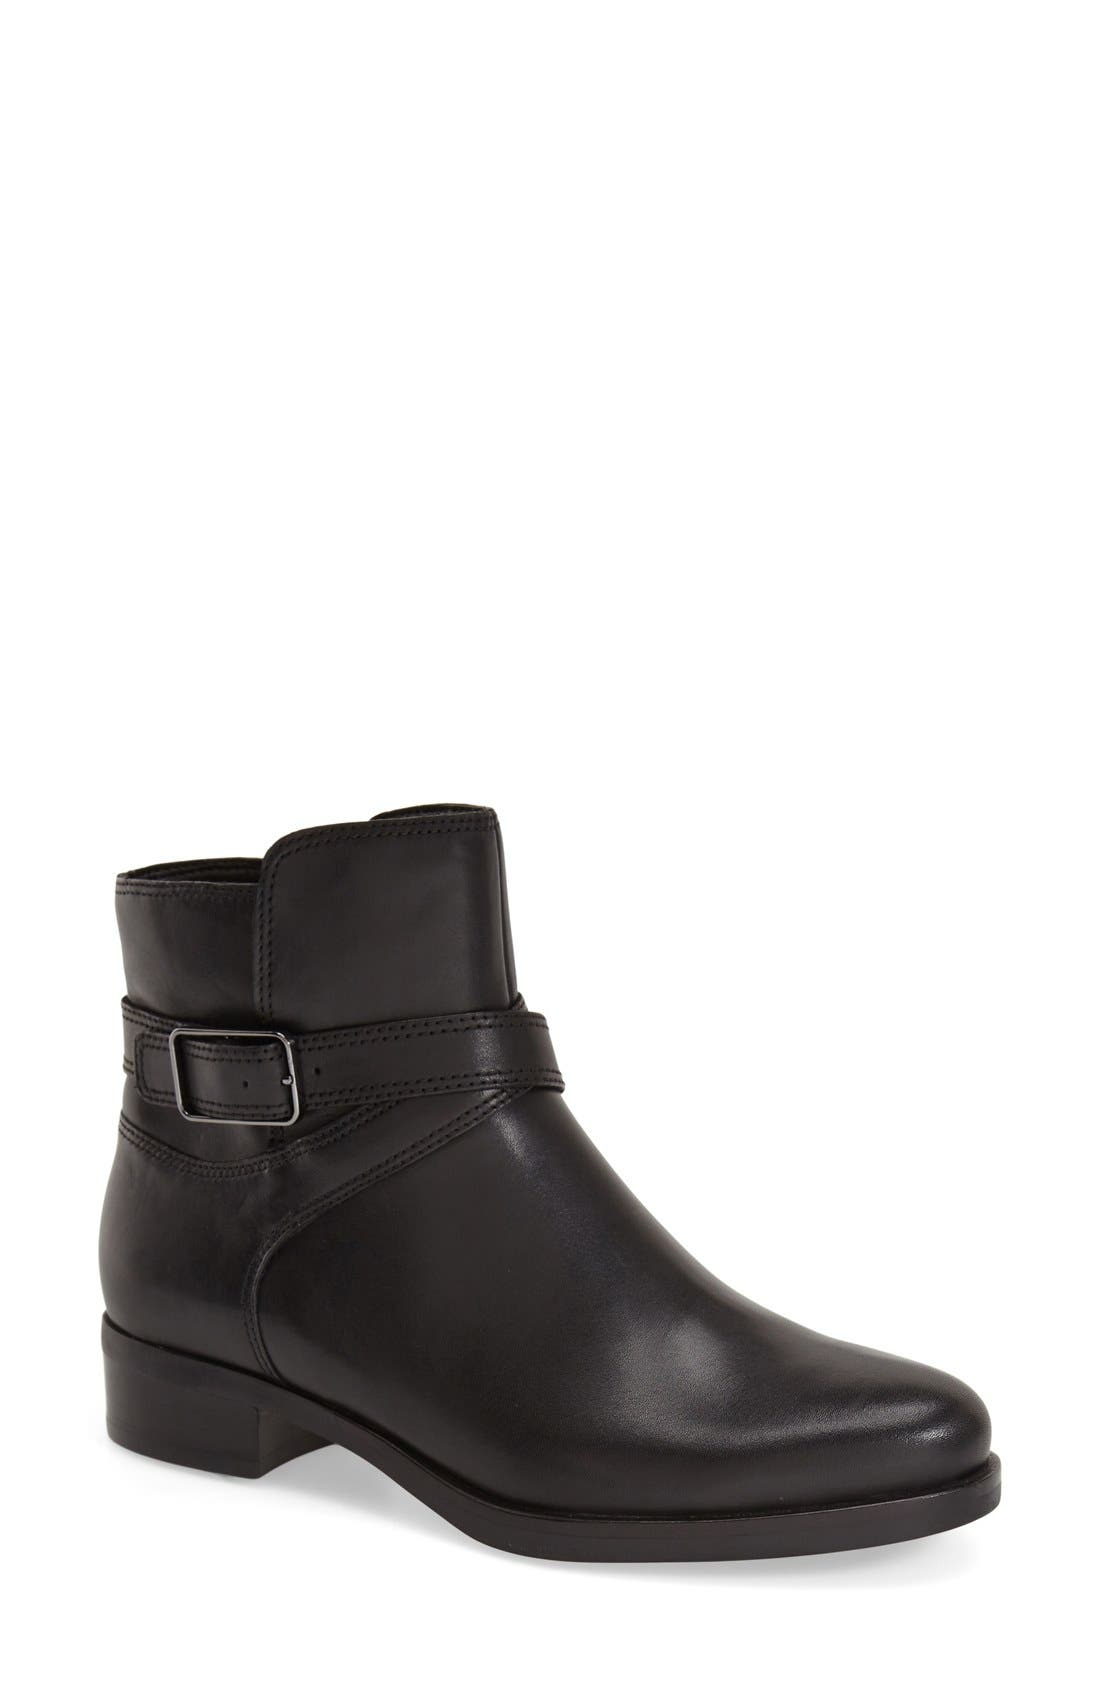 ecco ankle boots womens